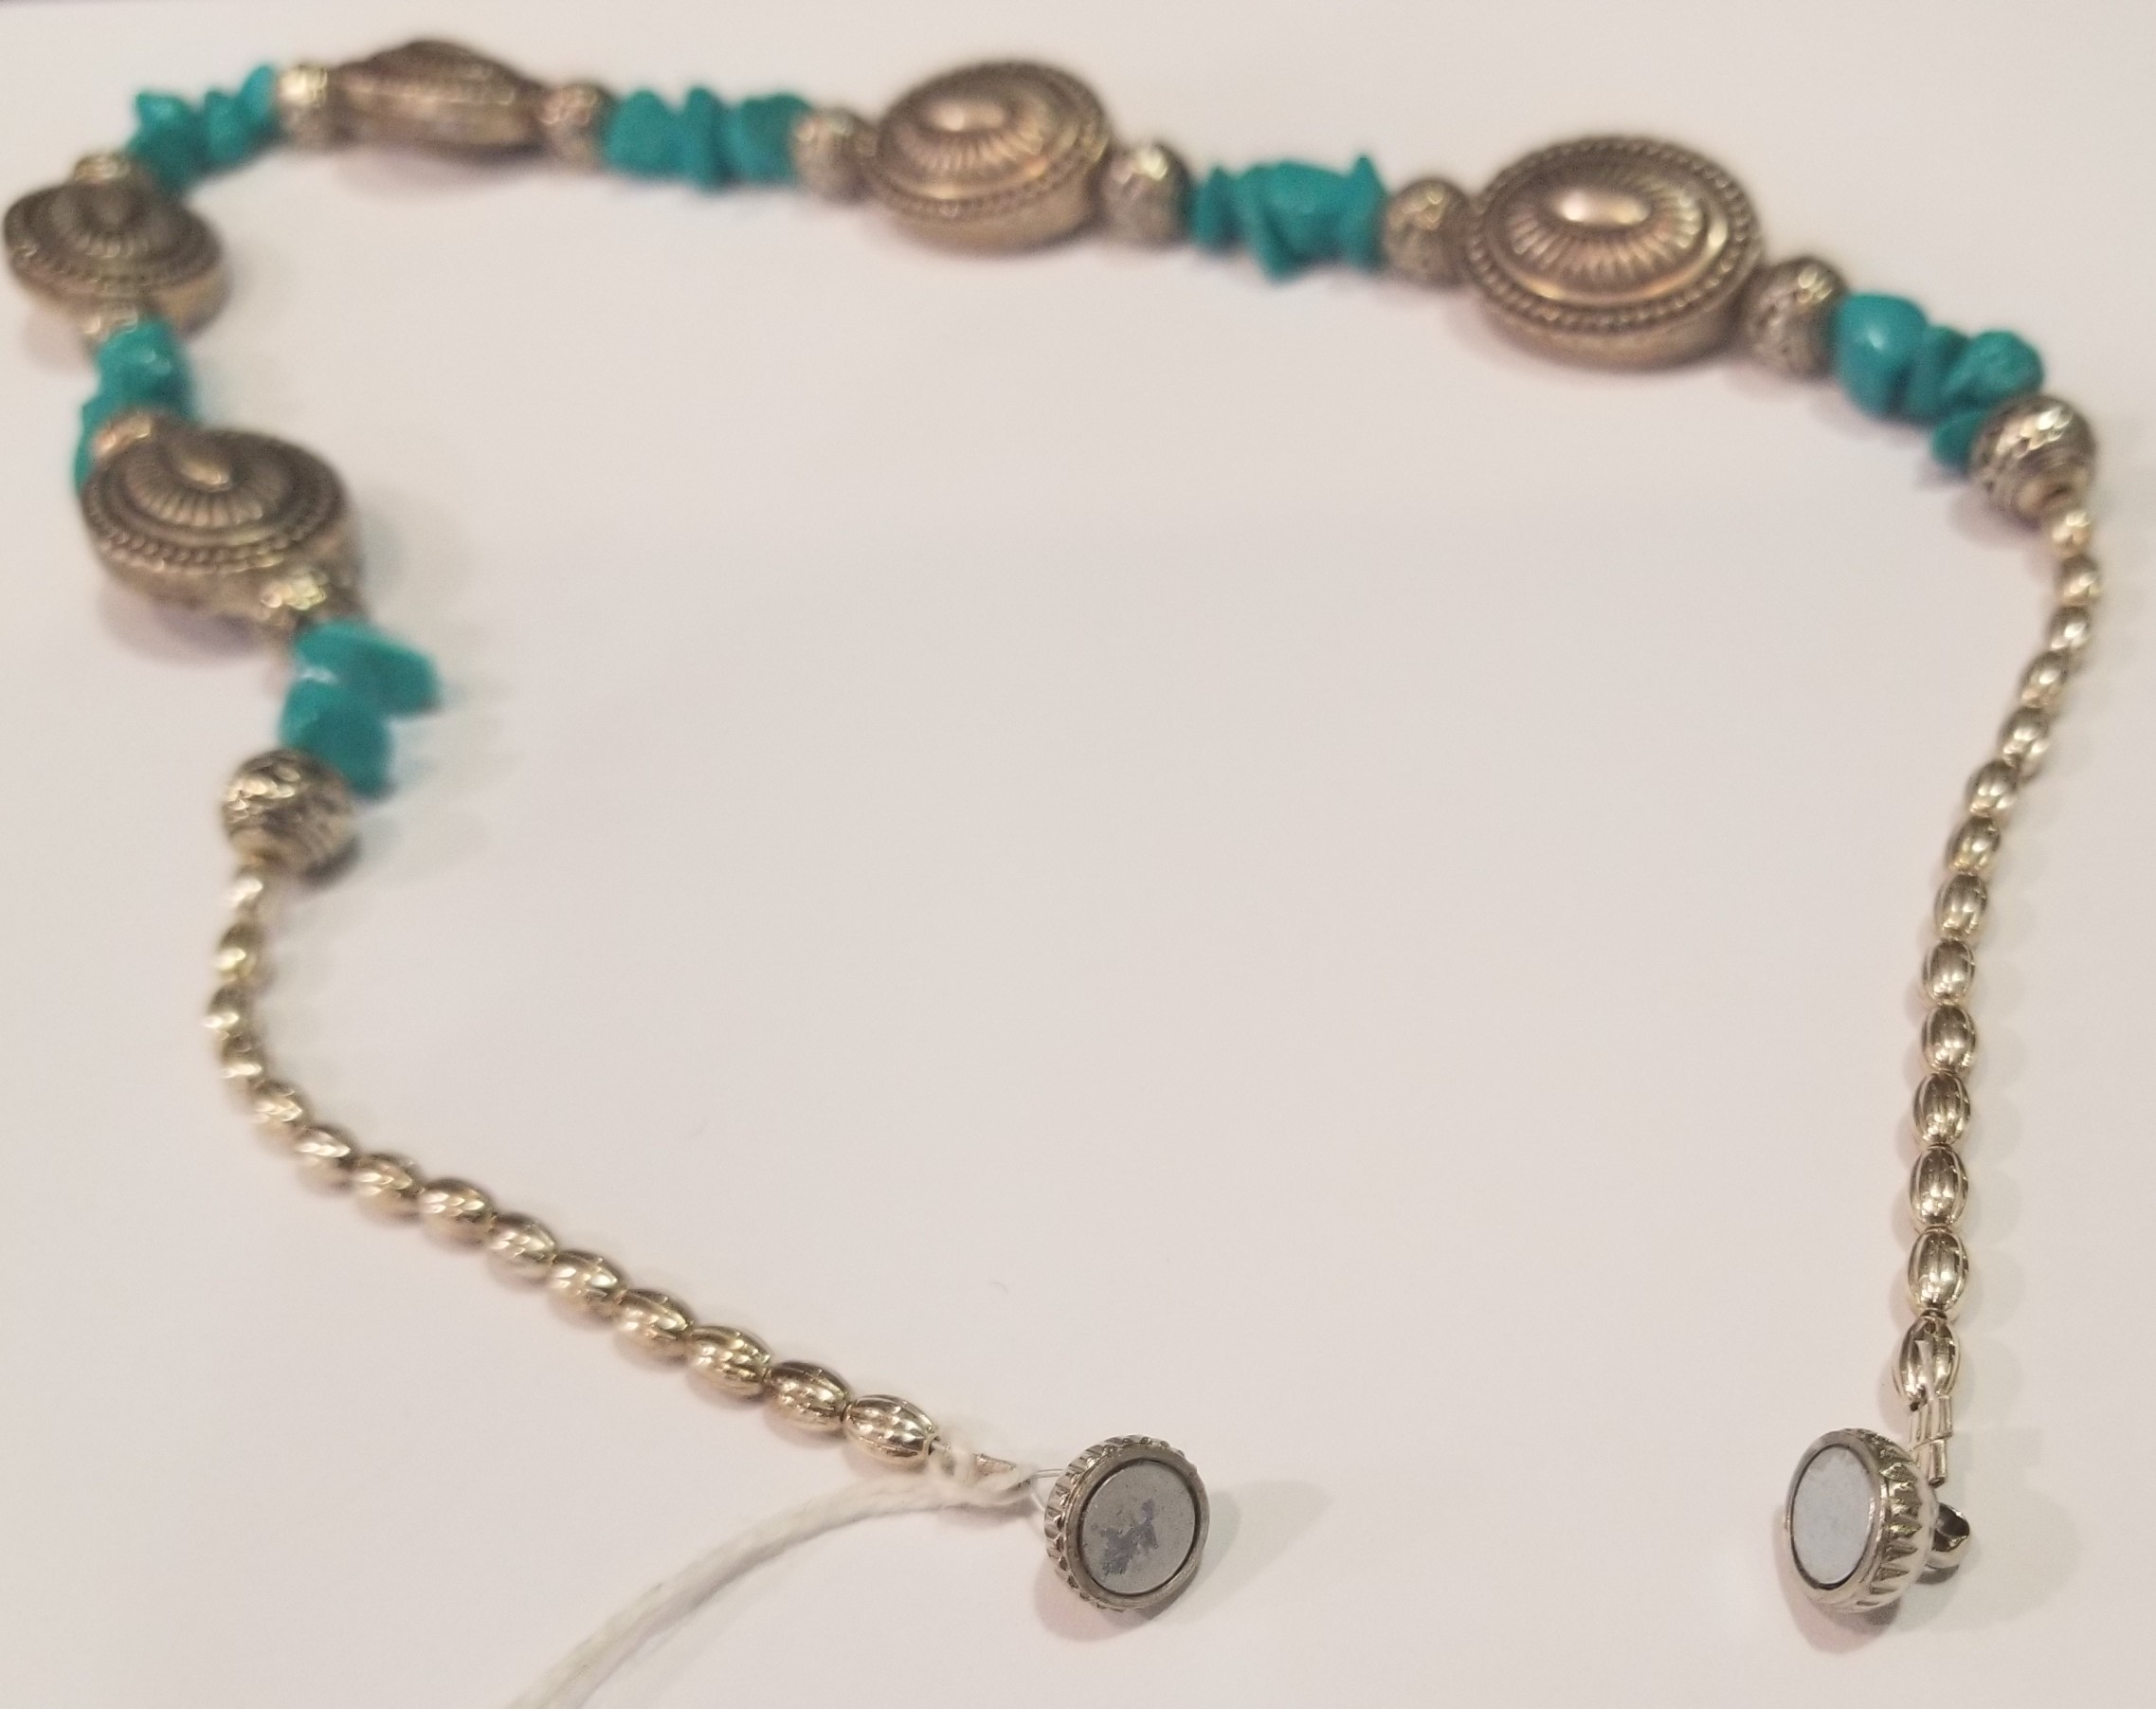 Turquoise and Silver Necklace, by Gary Golden